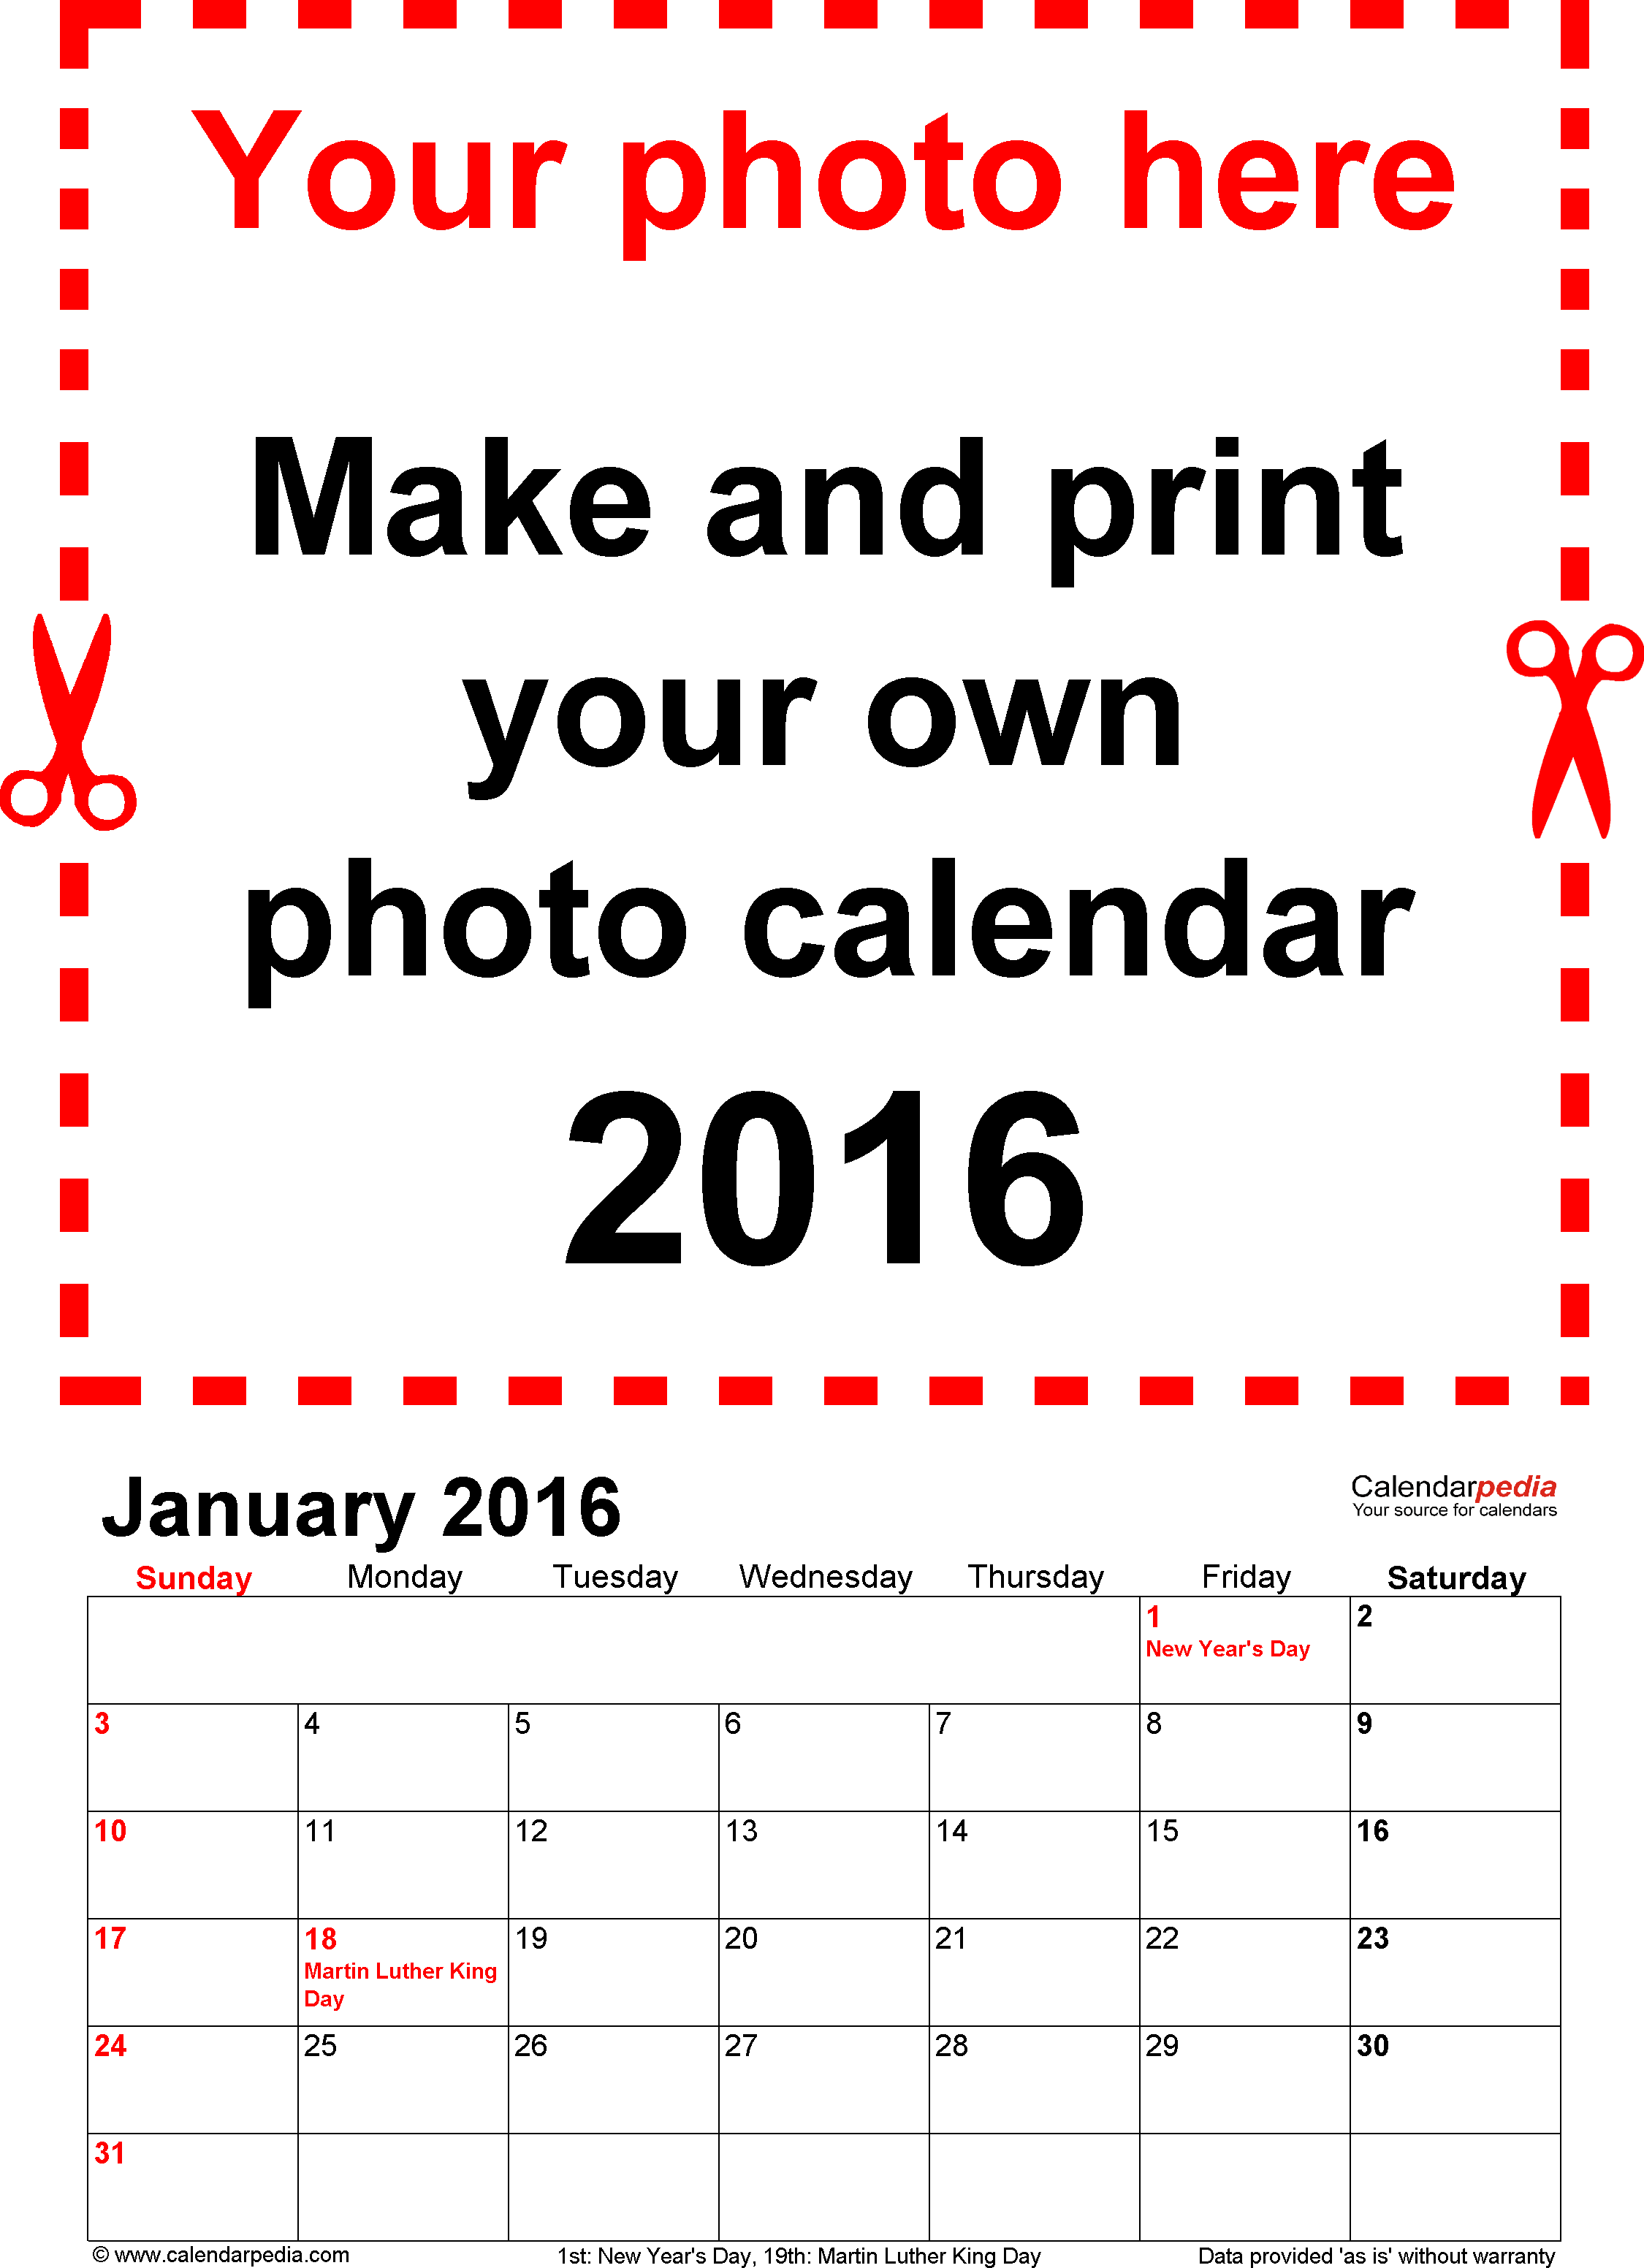 Download Template 1: Photo calendar 2016 for PDF, 12 pages, portrait format, standard layout